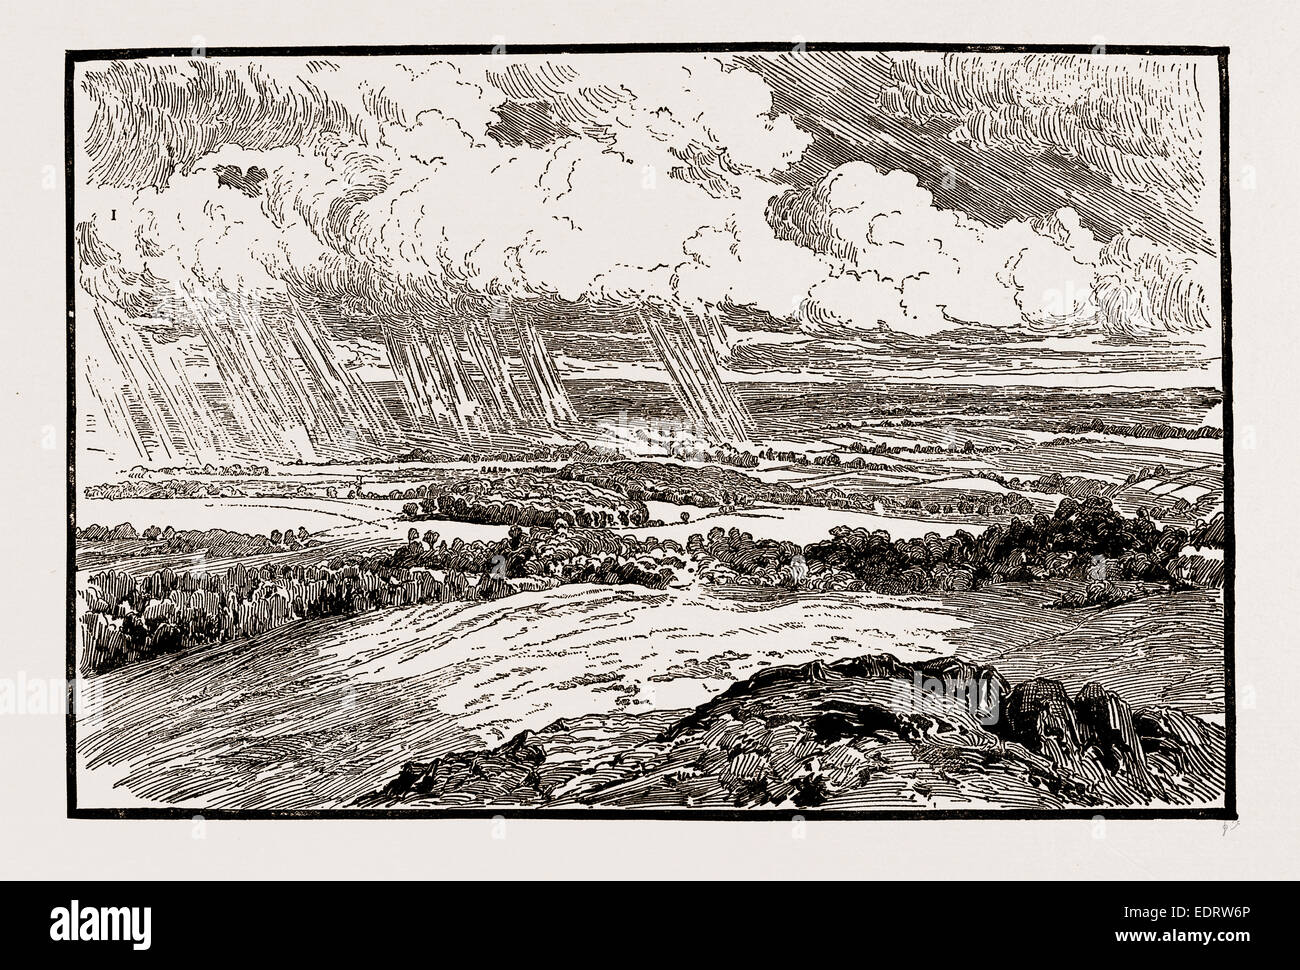 ILLUSTRATIONS FROM THE CATALOGUE OF THE ROYAL INSTITUTE OF PAINTERS IN WATER COLOURS: CLOUDS AND SHADOWS, BY C.E. - Stock Image